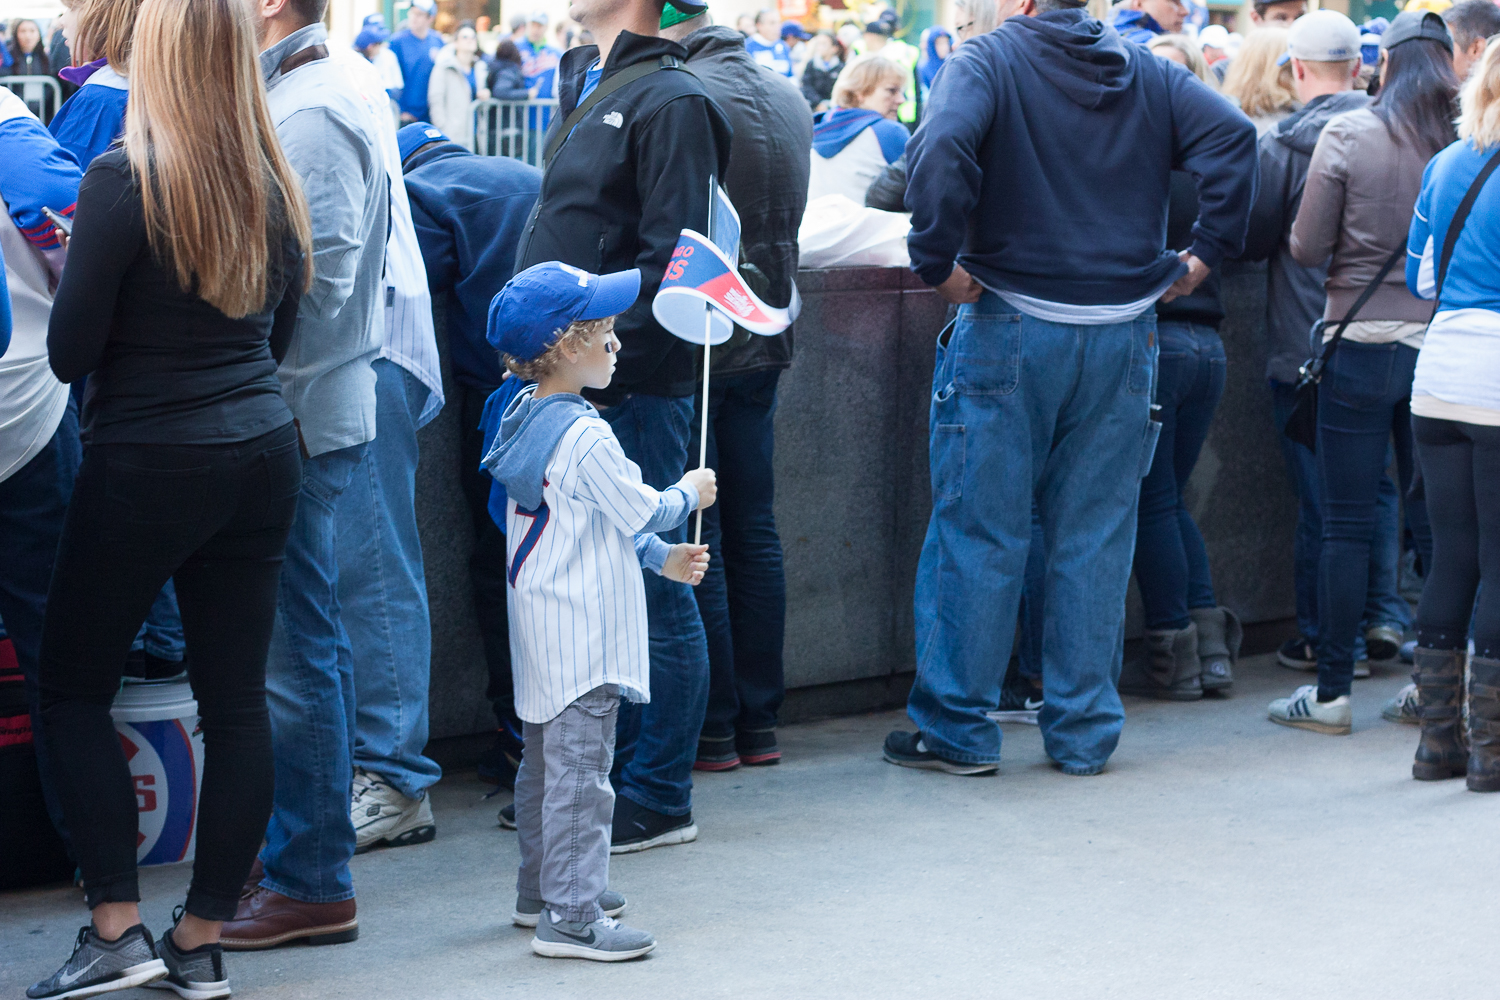 Cubs_Win_World_Series_Laura_Suprenant_Photography-1.jpg